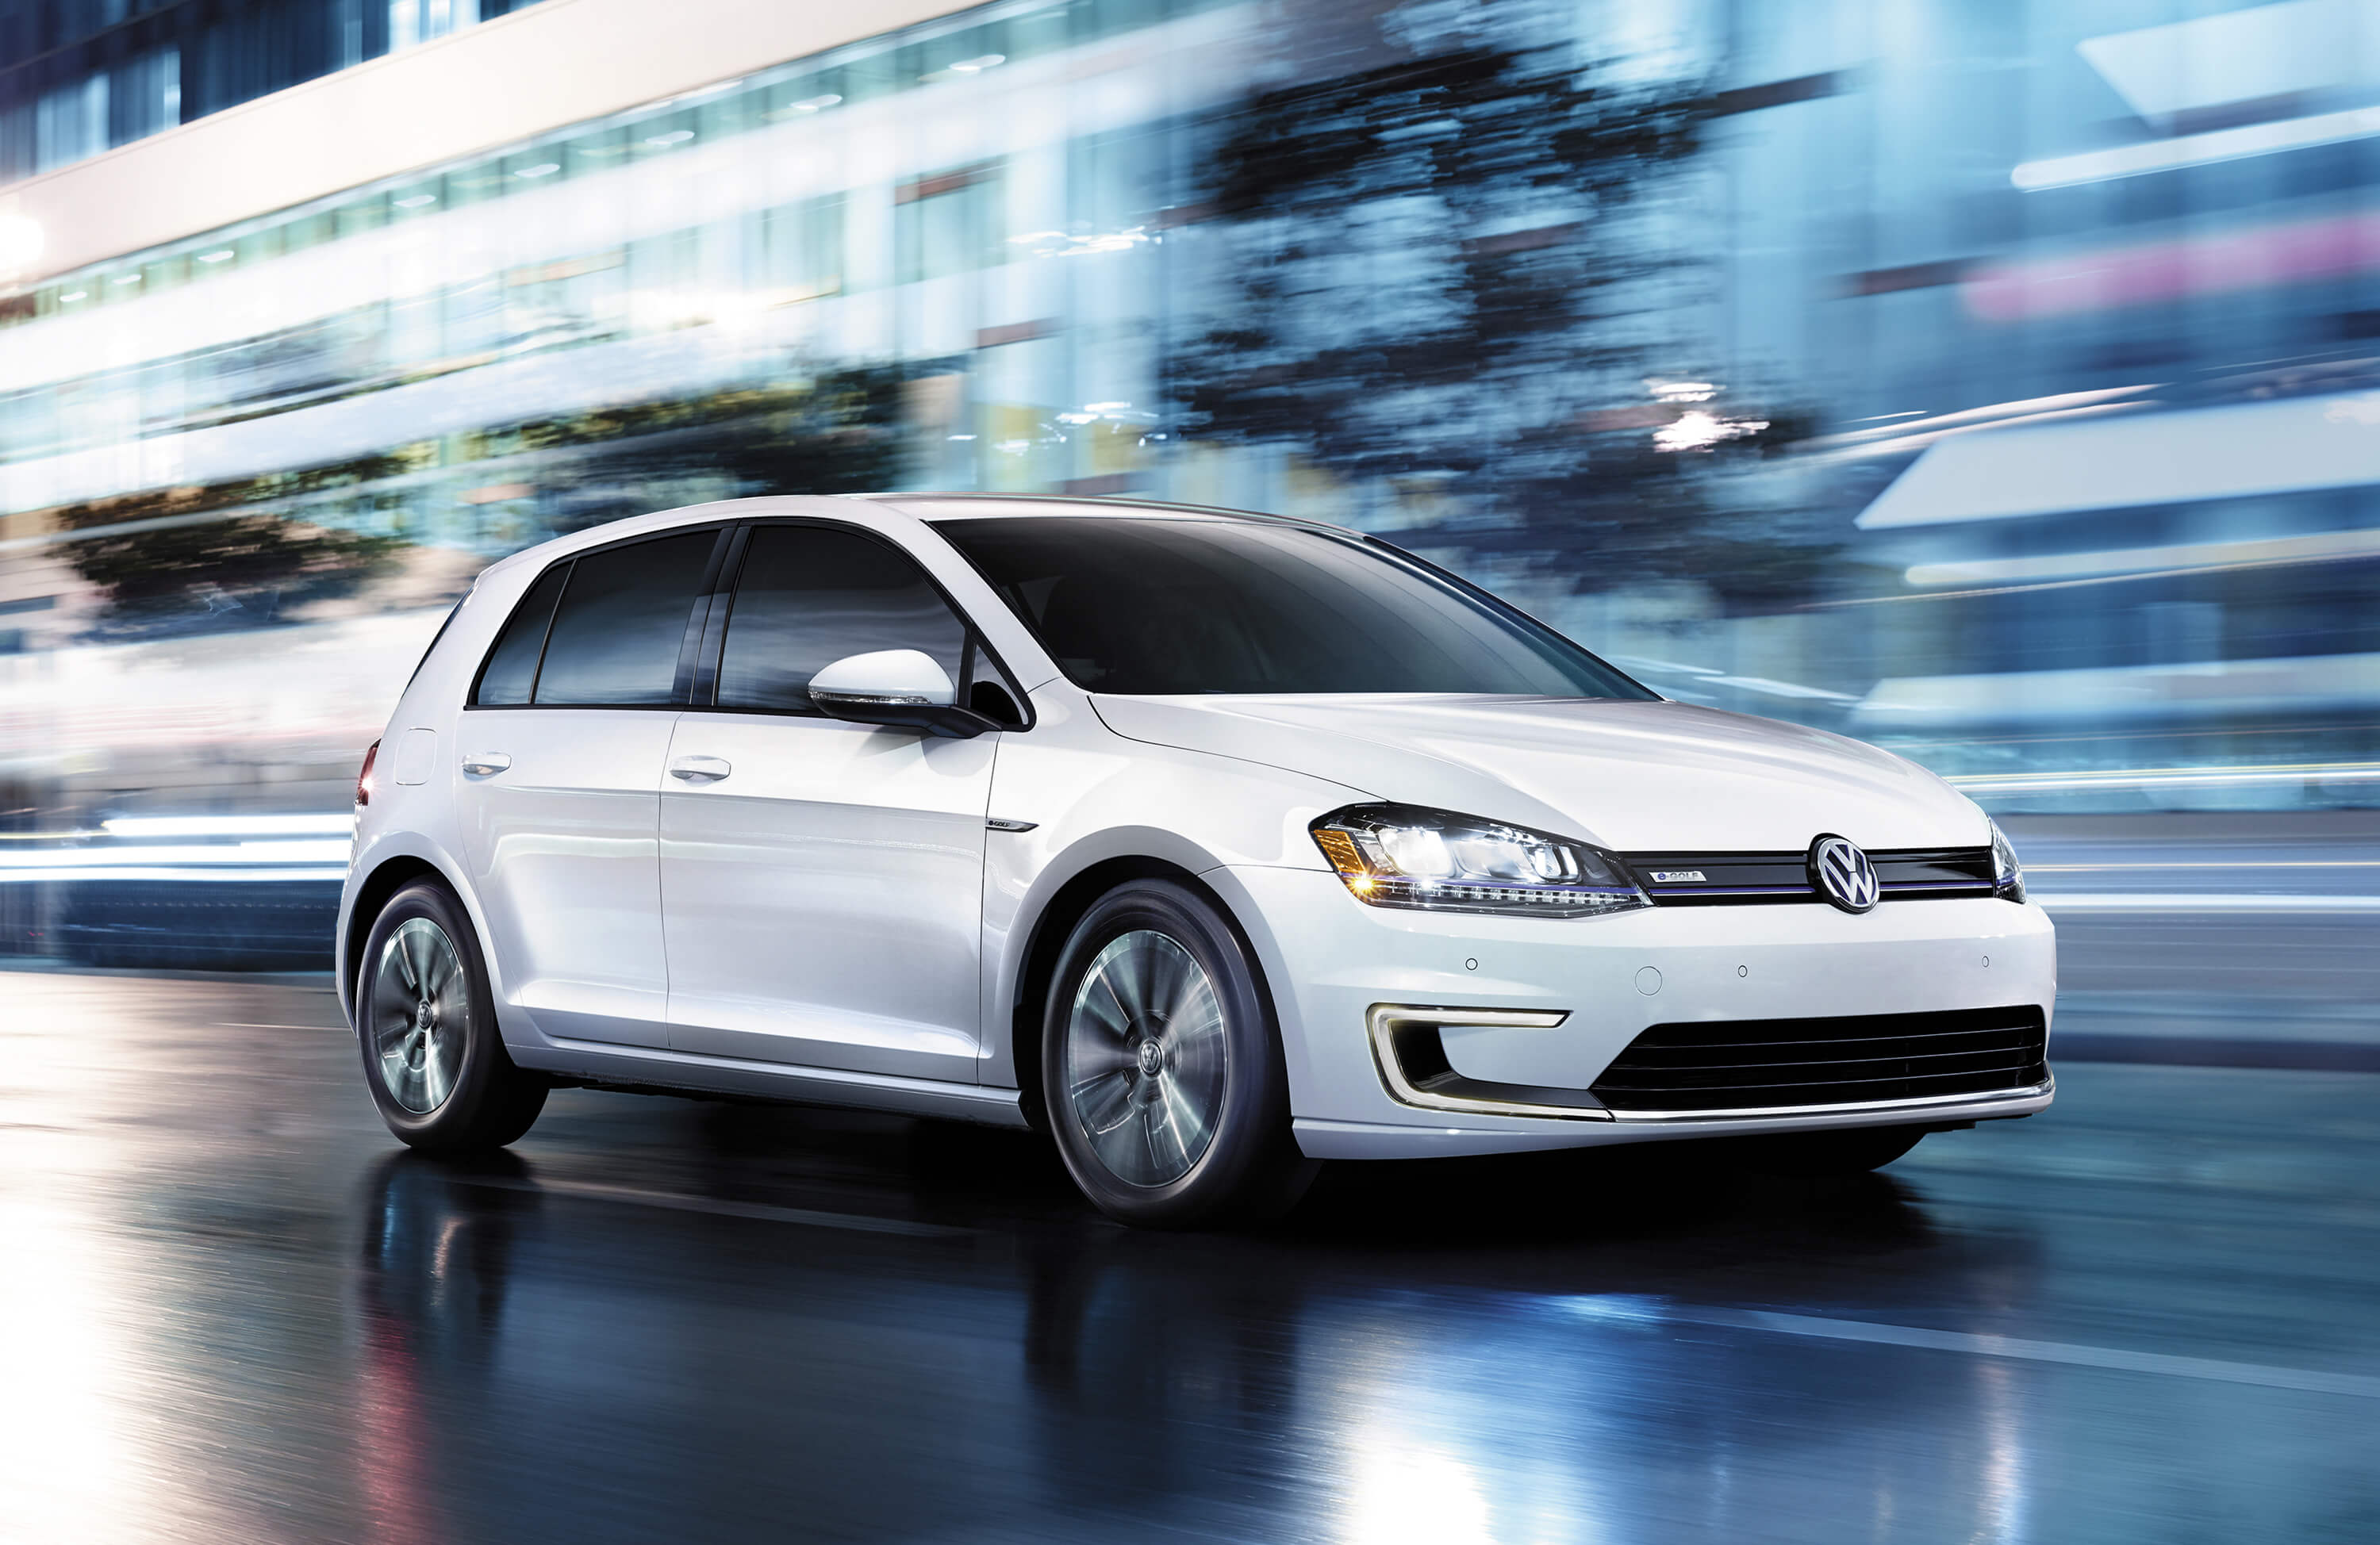 2016 Volkswagen E Golf Performance Preview (Photo 7 of 11)